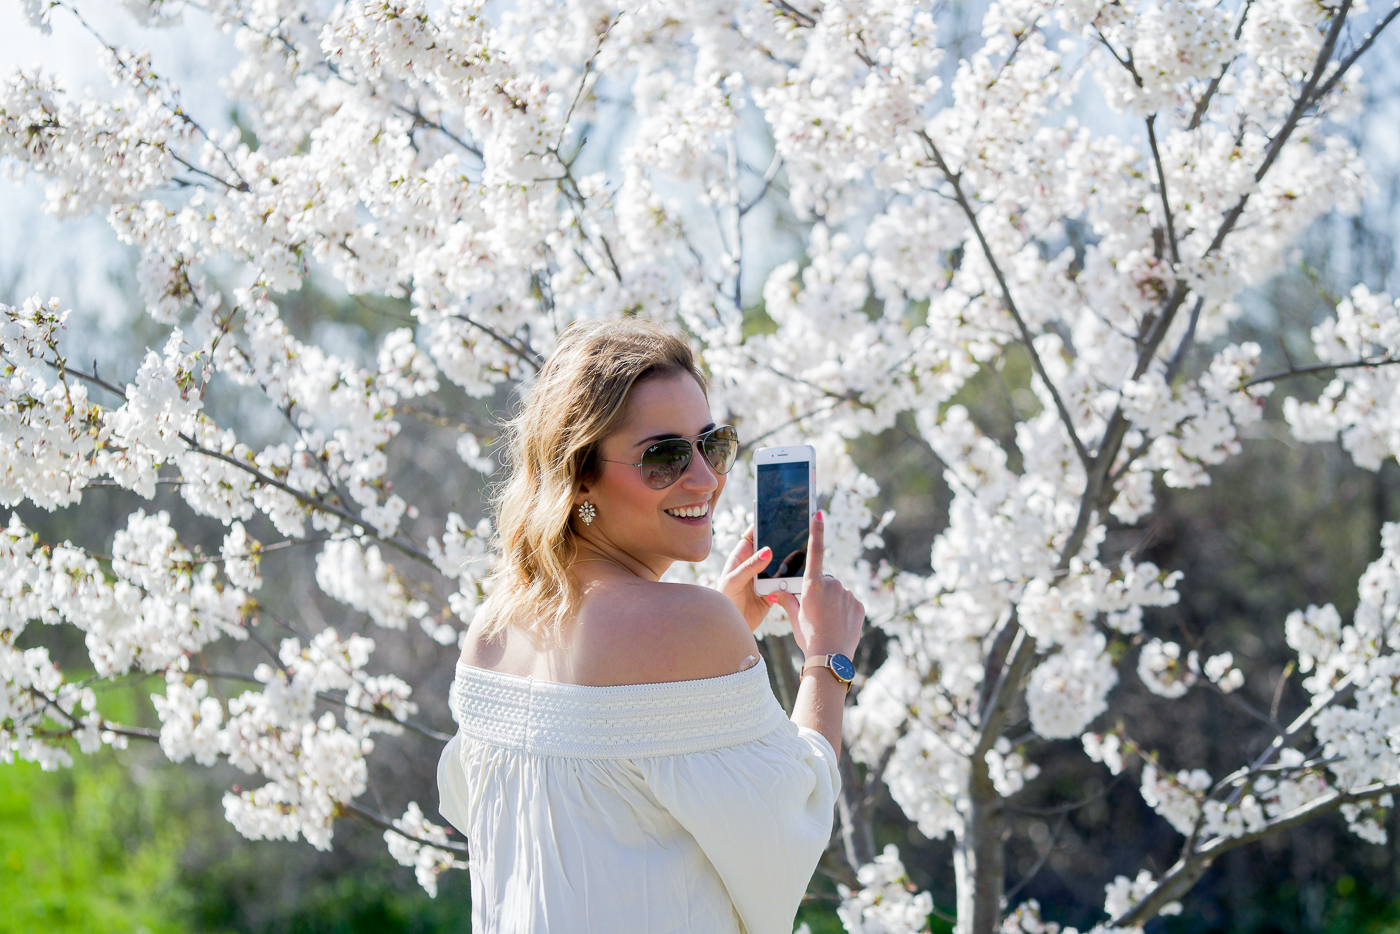 Canadian fashion and lifestyle blogger taking photos of the cherry blossoms at Centennial Park in Etobicoke